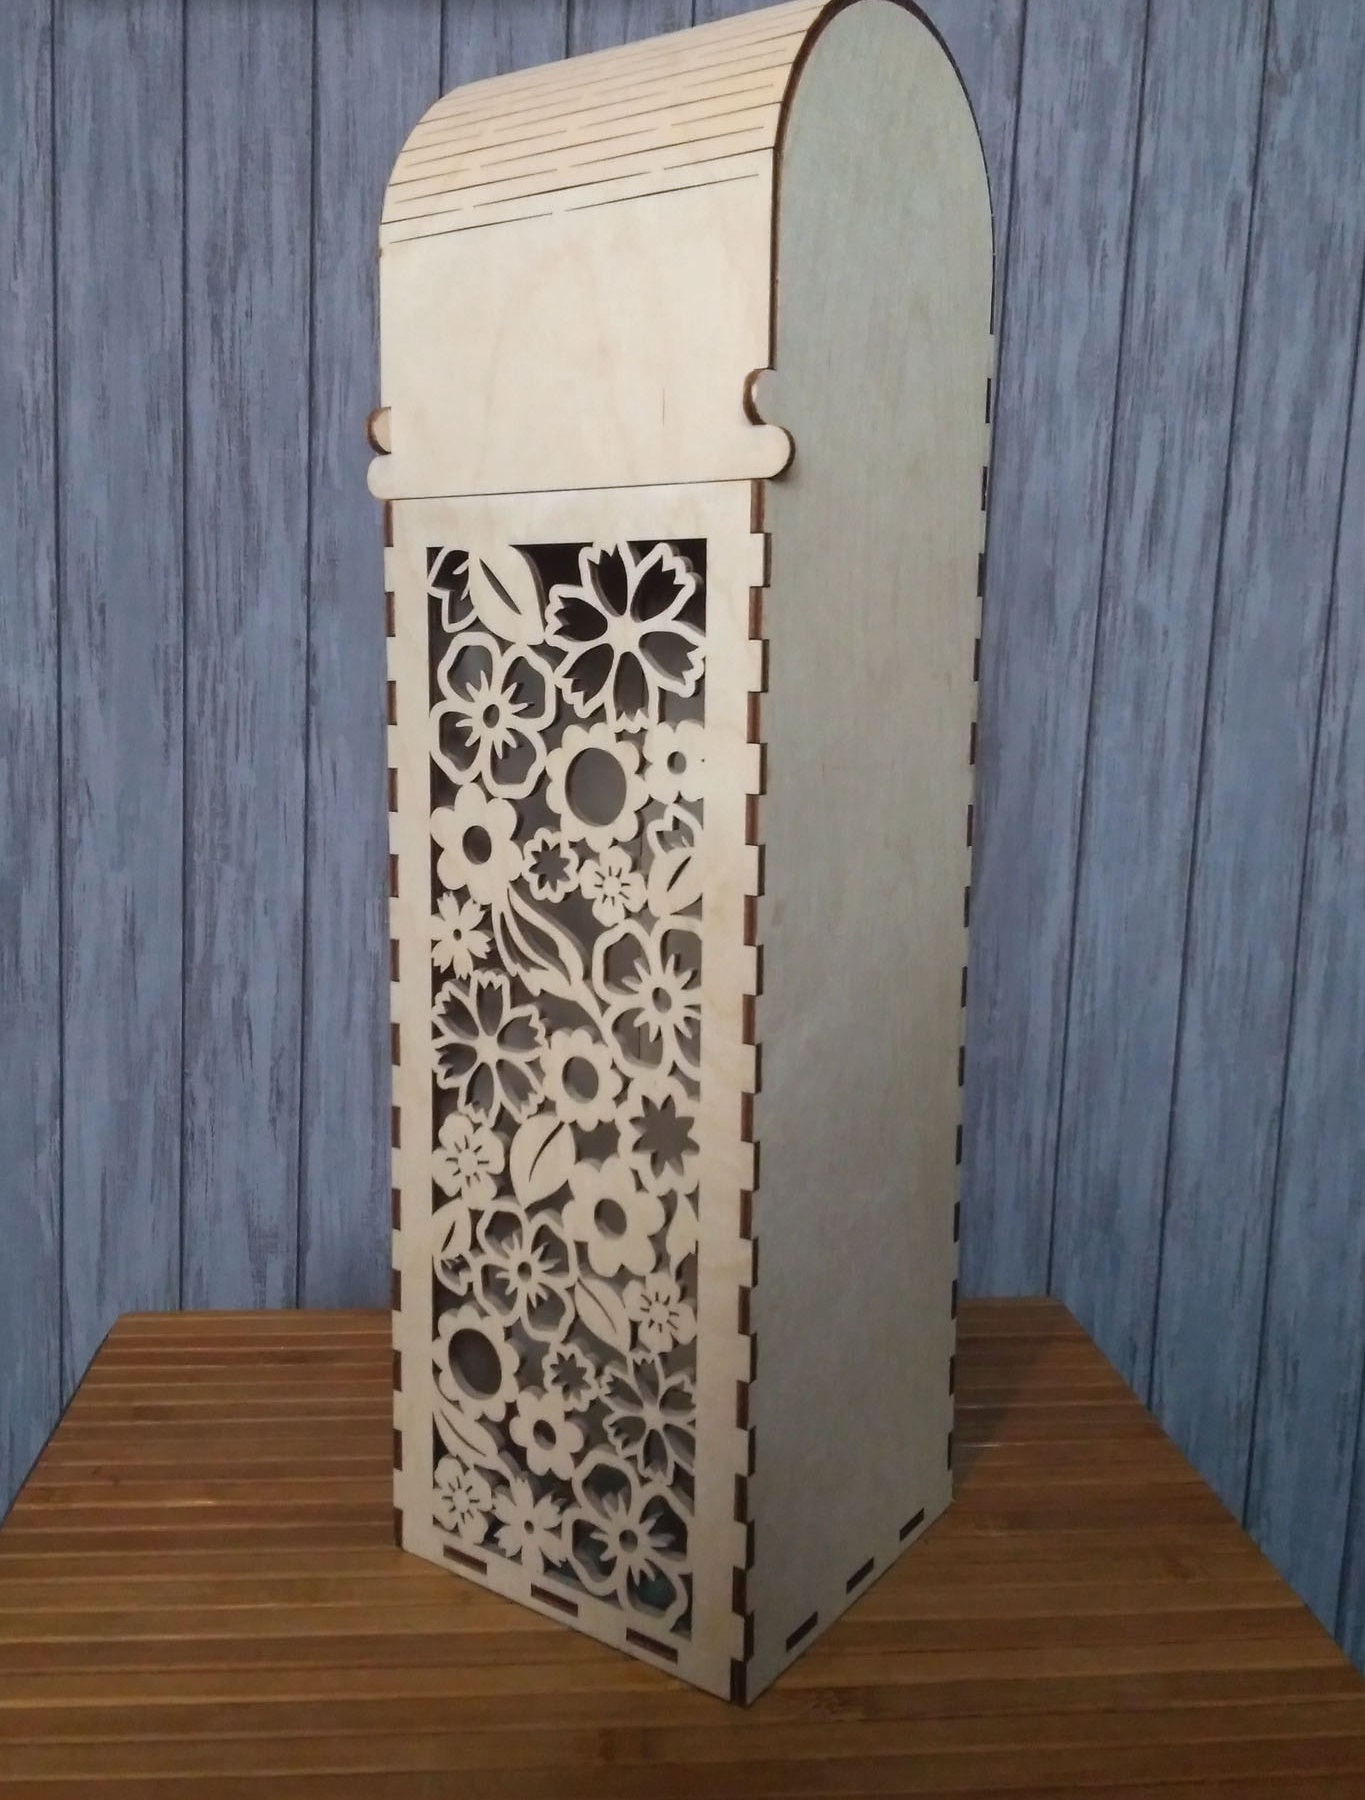 Laser Cut One Bottle Wooden Wine Box With Hinged Lid Gift Box Free Vector